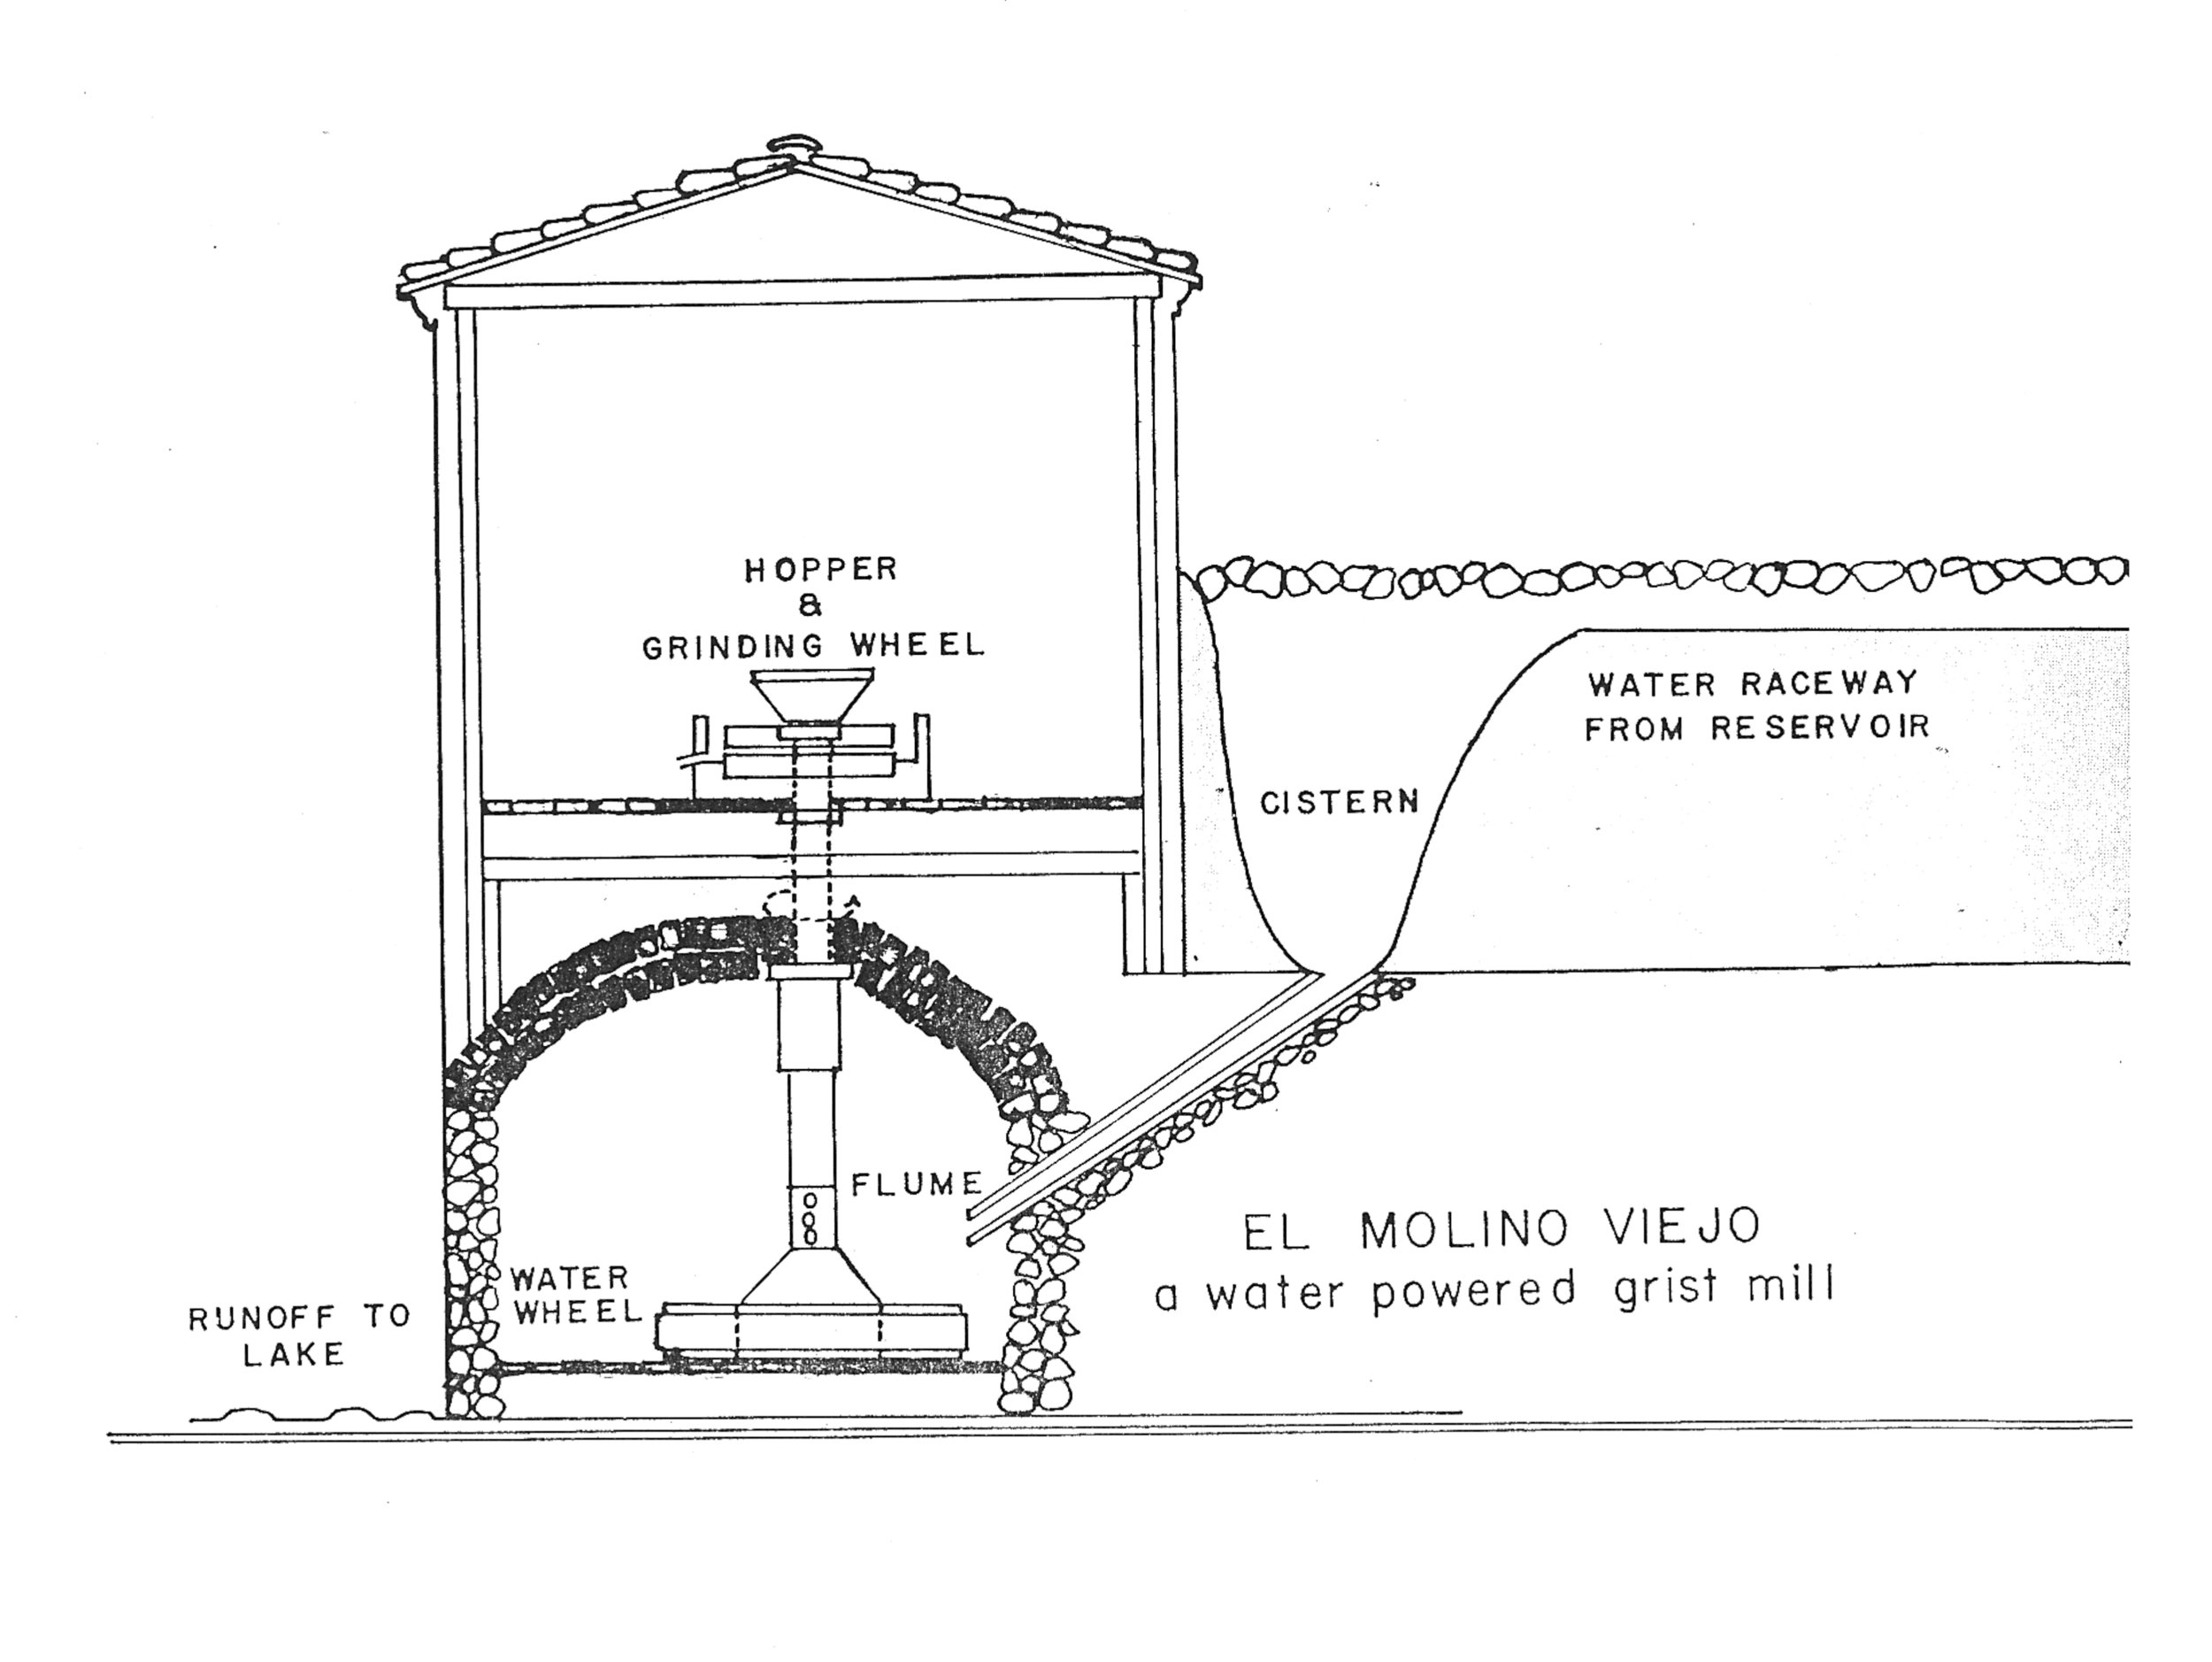 Diagram of a water powered mill